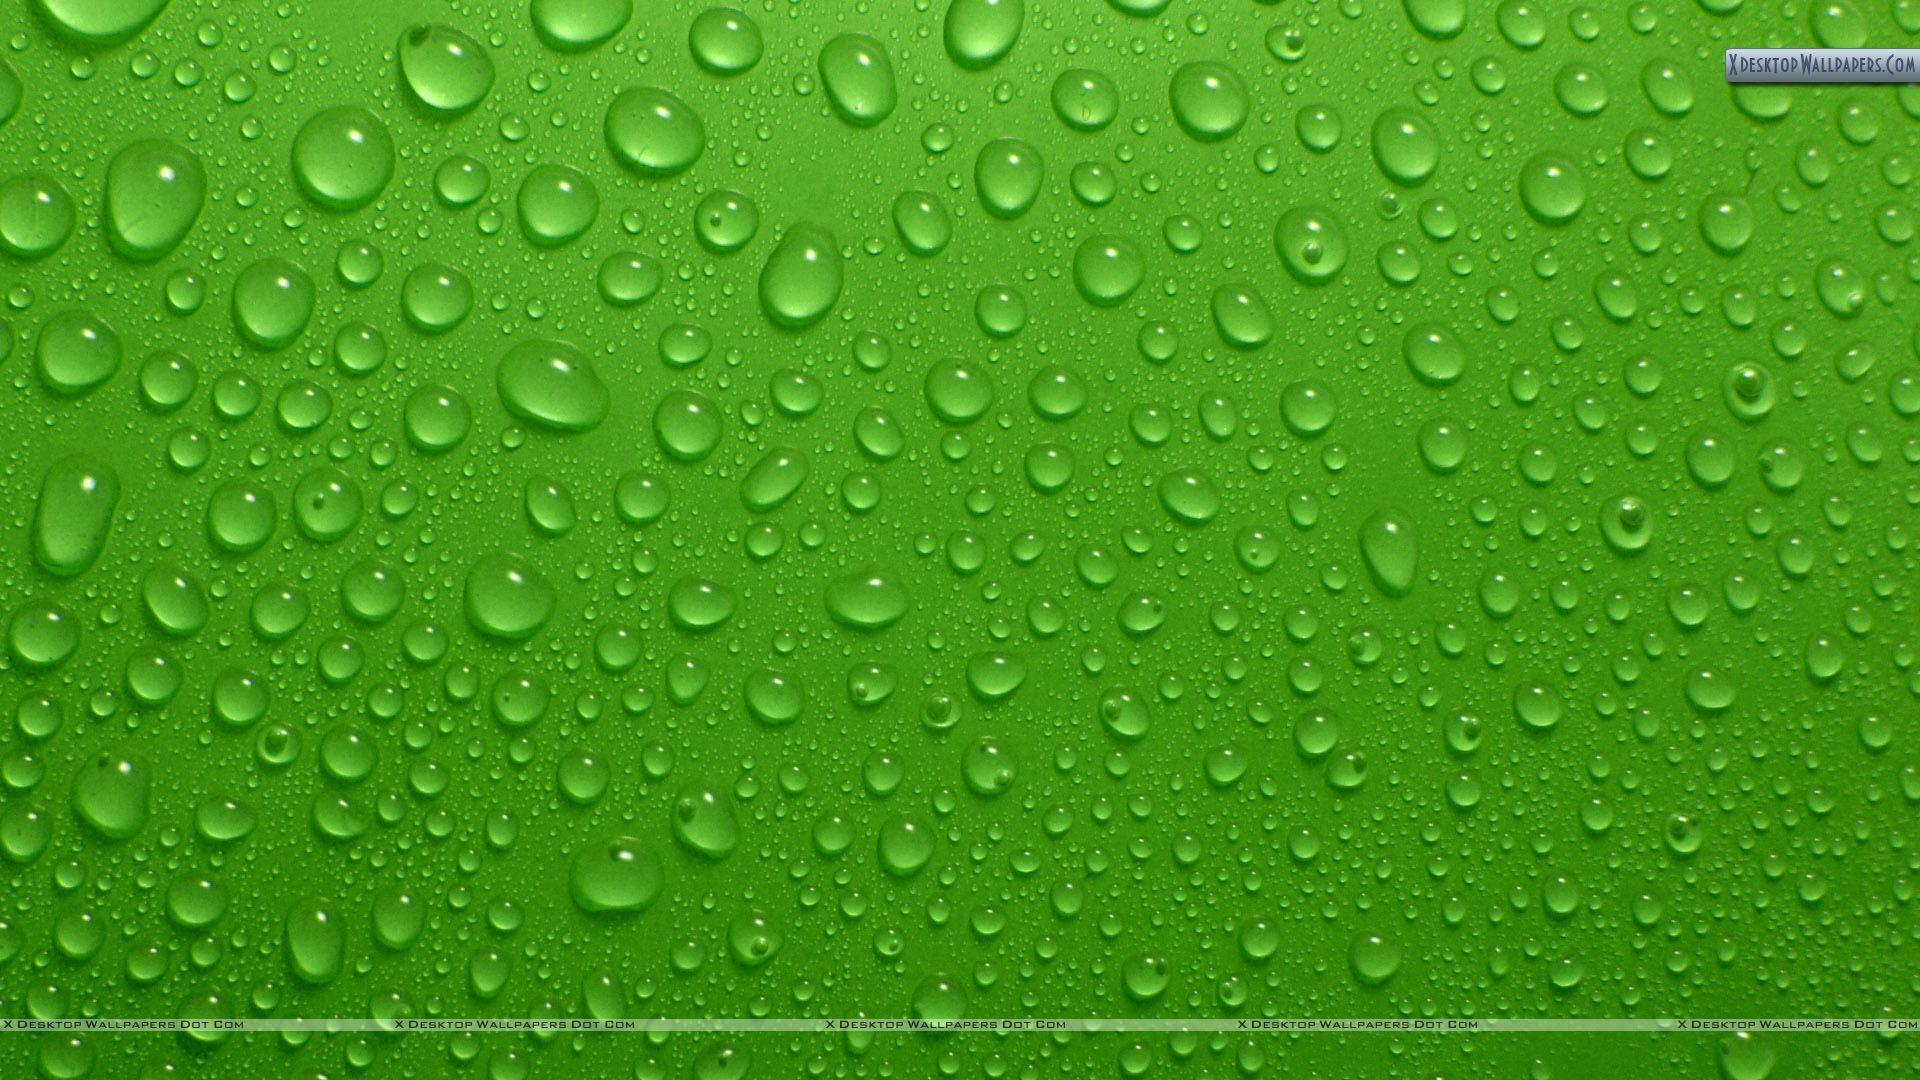 Green Backgrounds 19 Desktop Backgrounds